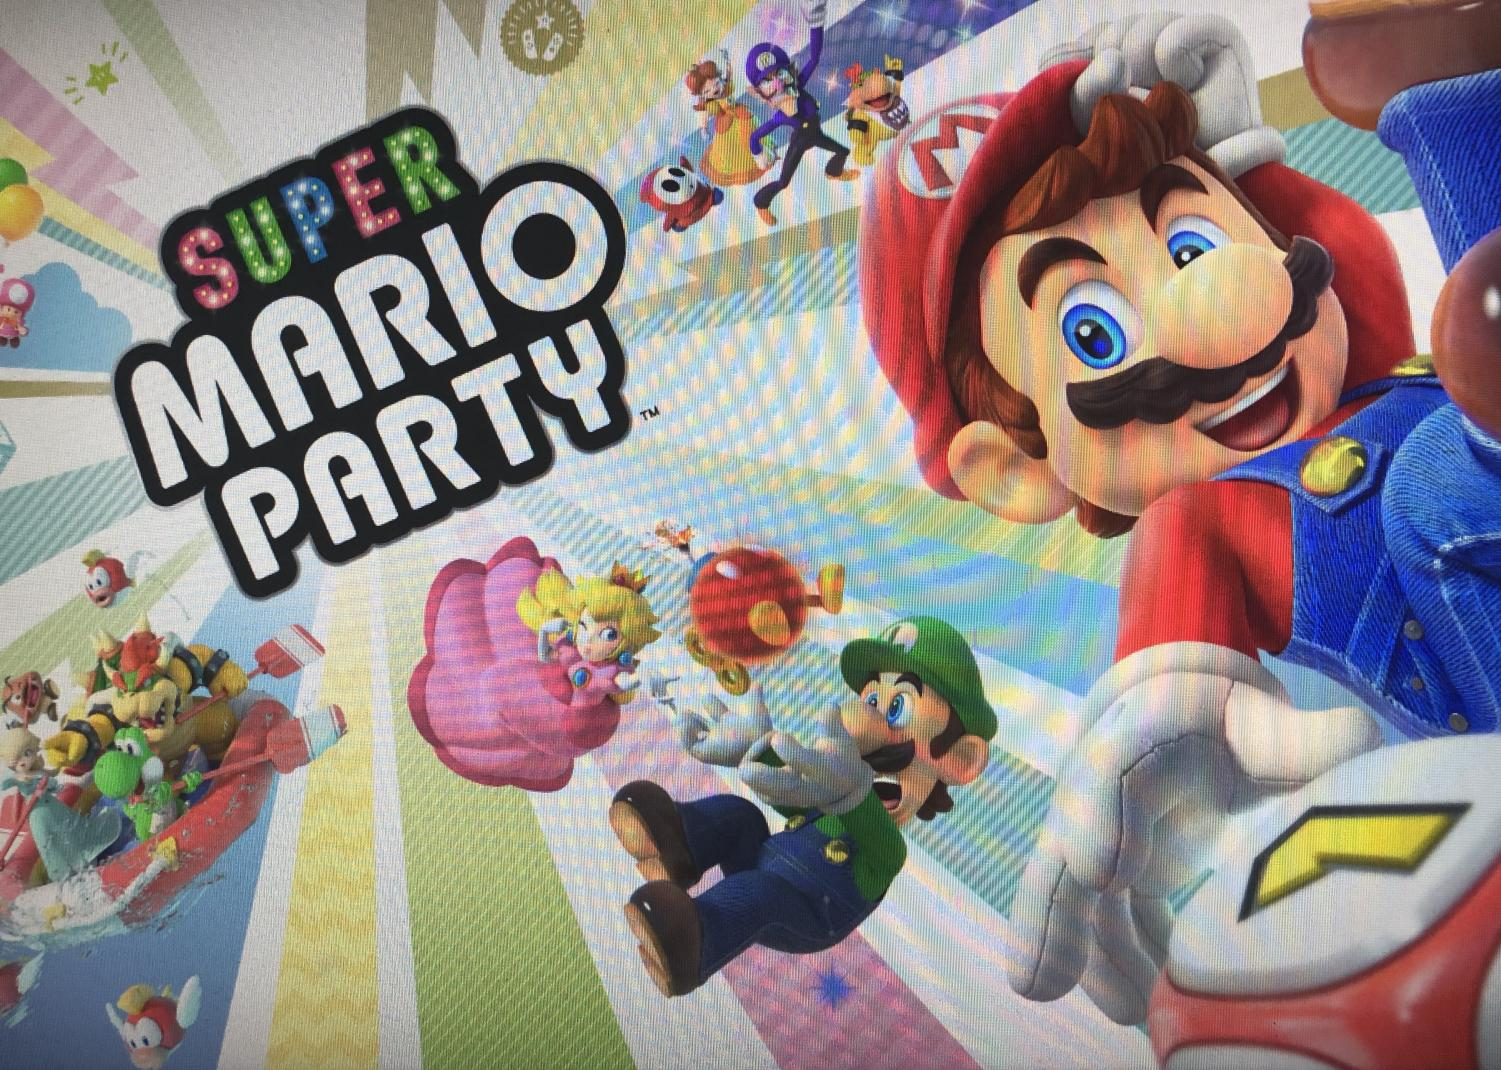 Super Mario Party title screen.